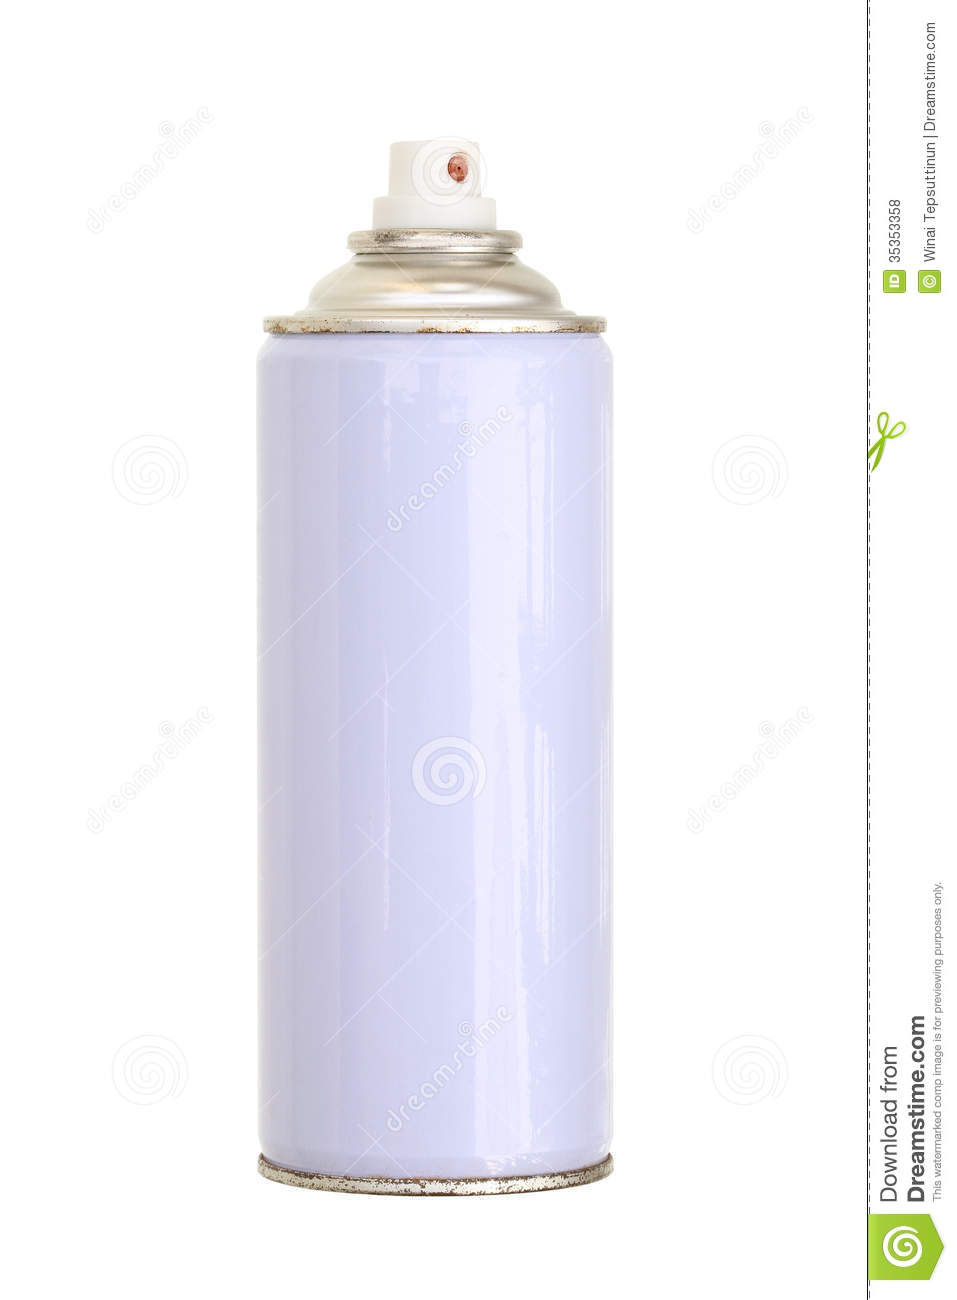 Spray Paint Can Royalty Free Stock Photos Image 35353358